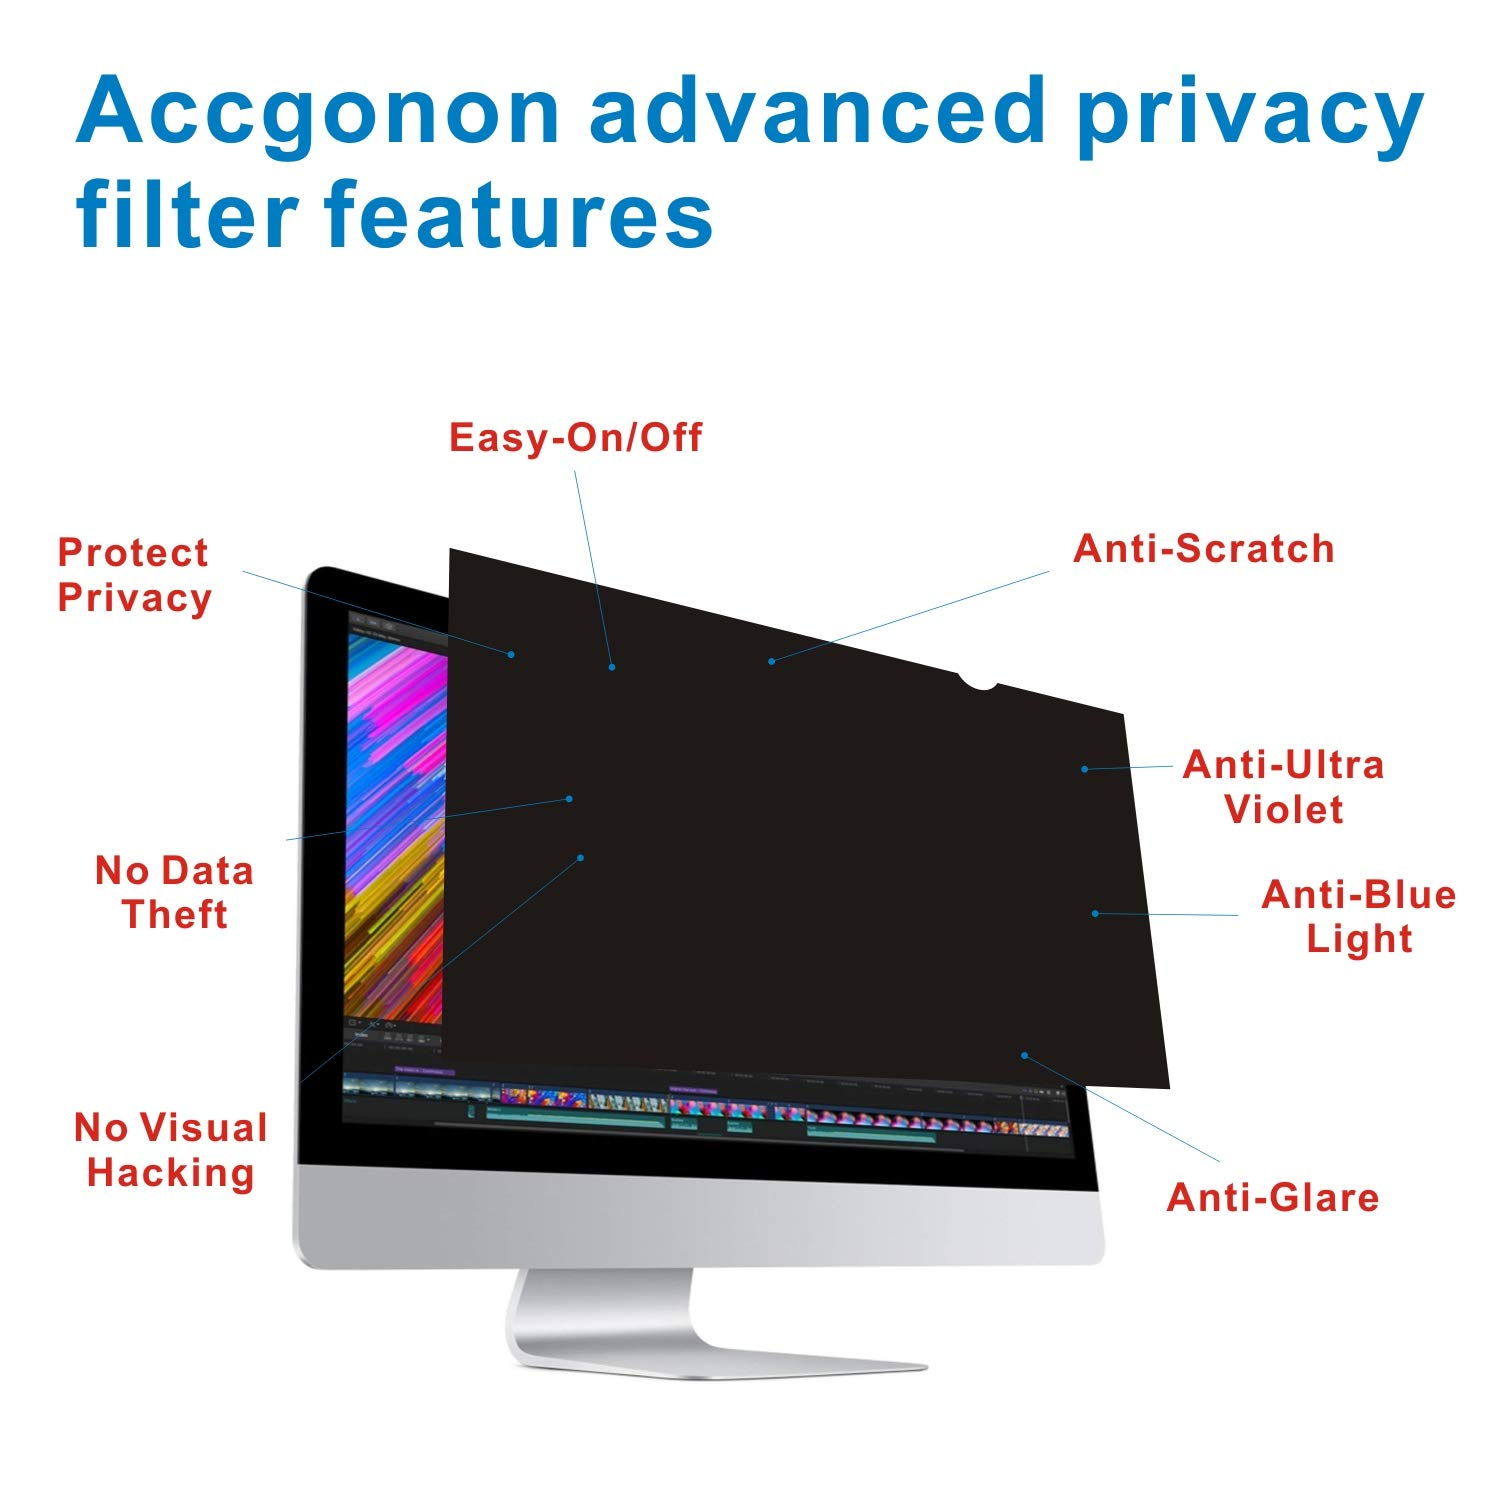 Accgonon Computer Privacy Screen Filters for 25-inch Widescreen(16:9) Monitor Privacy Screen Protector,Anti-Glare Anti-Spy Anti-Blue Scratch and UV Protection,Easy Install by ACCGONON (Image #3)